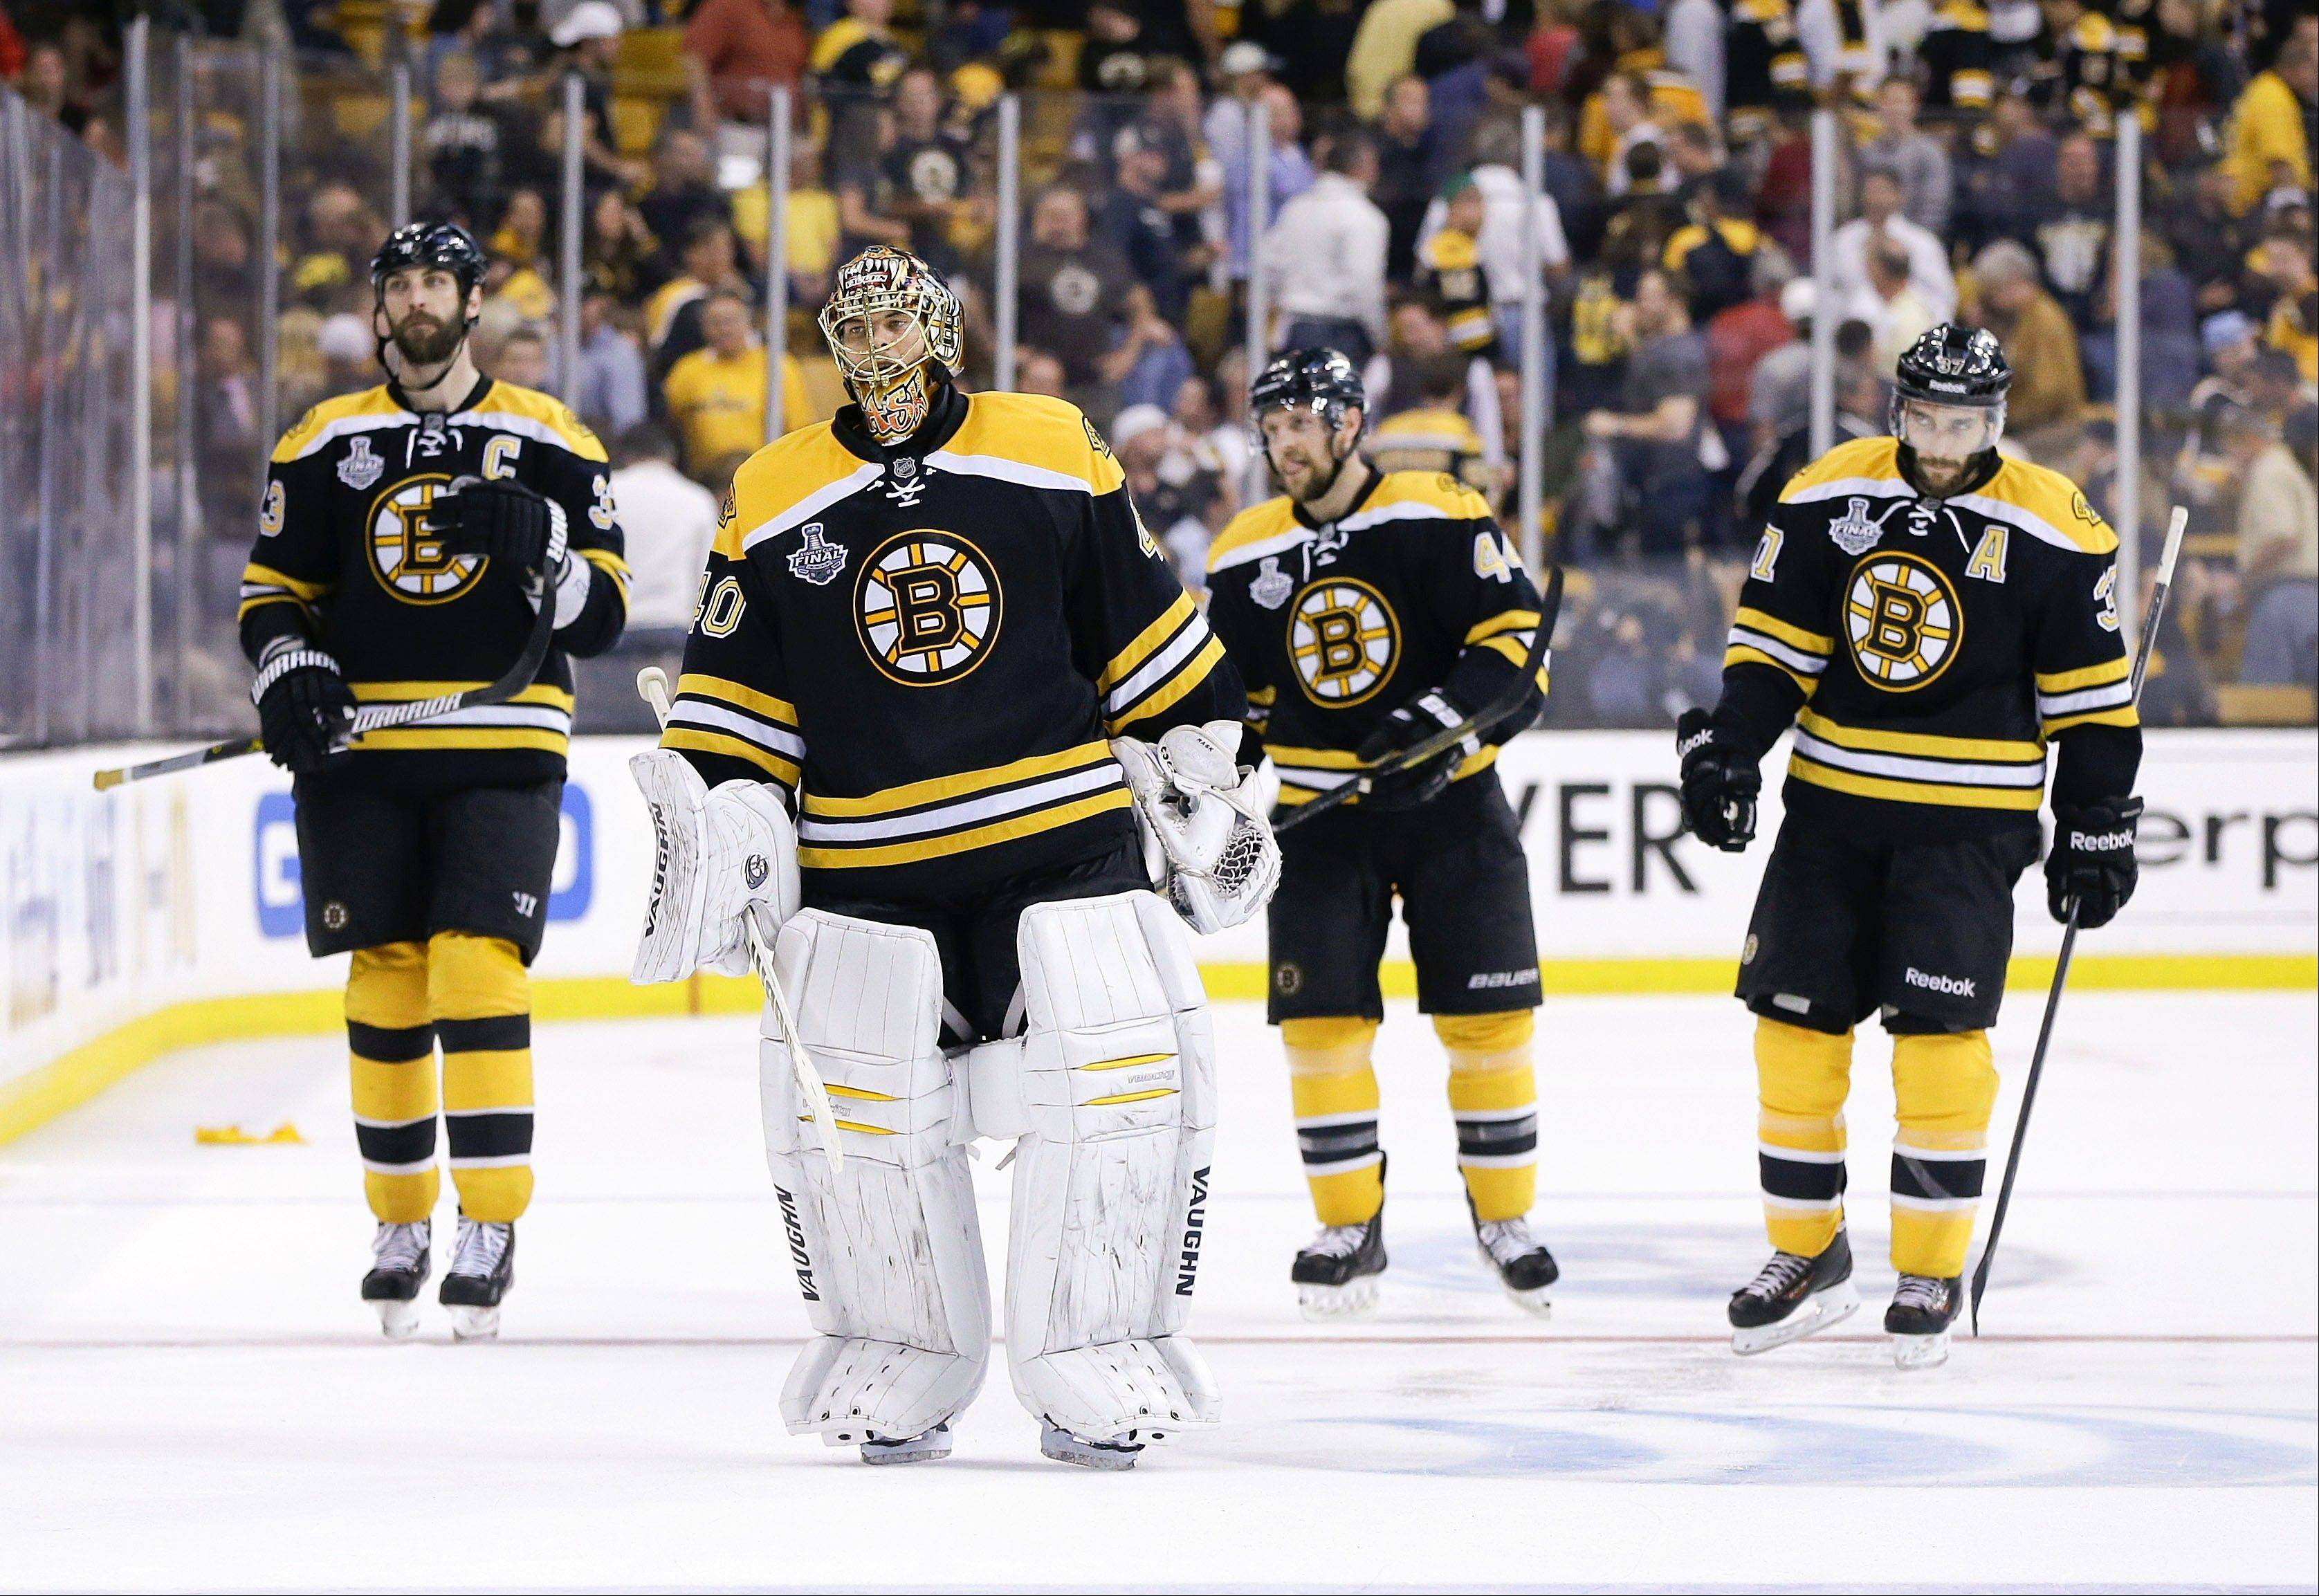 Boston Bruins defenseman Zdeno Chara (33), of Slovakia, Boston Bruins goalie Tuukka Rask (40), of Finland, Boston Bruins defenseman Dennis Seidenberg (44), of Germany, and Boston Bruins center Patrice Bergeron (37) leave the ice after their 6-5 loss to the Chicago Blackhawks during the first overtime period in Game 4 of the NHL hockey Stanley Cup Finals.